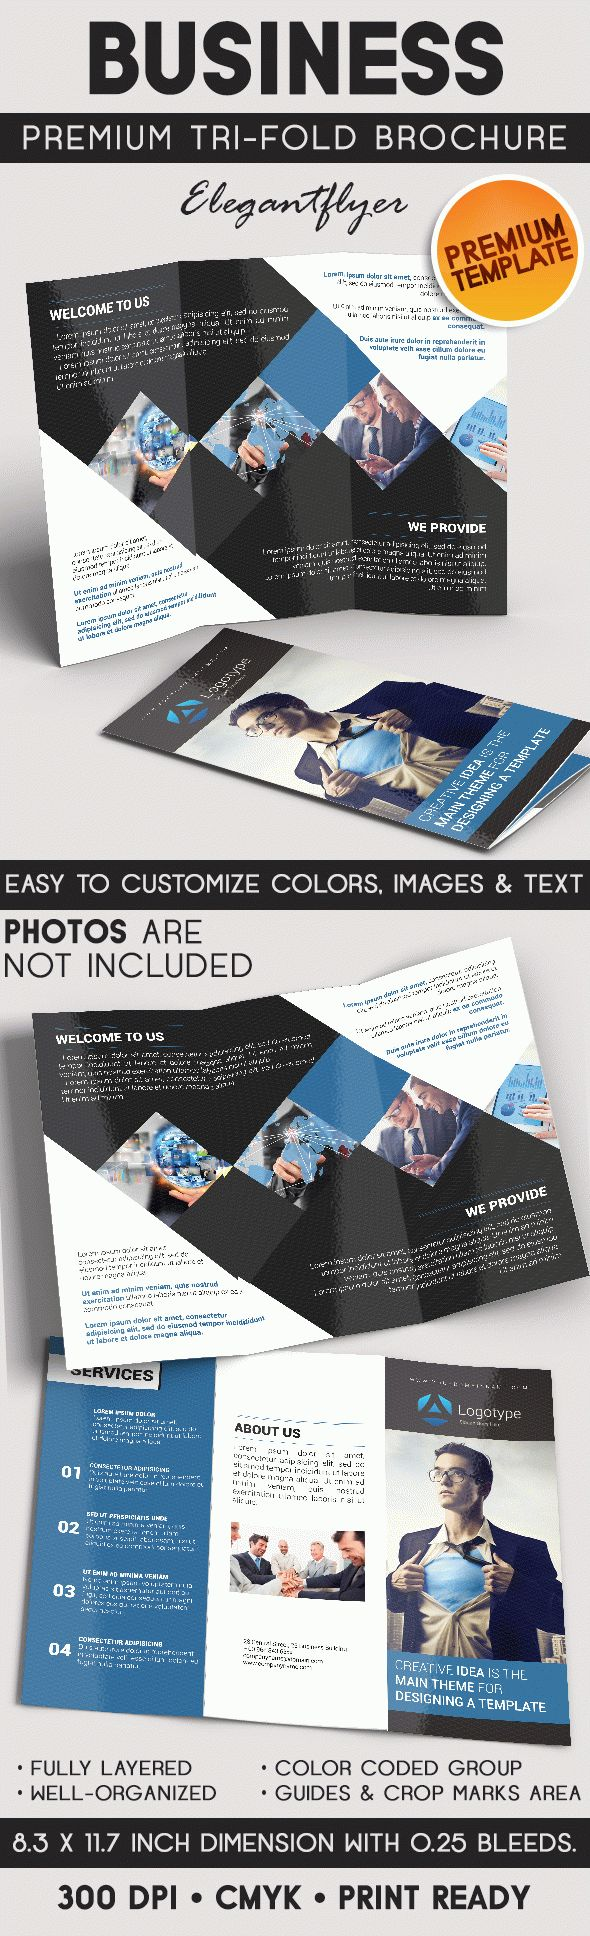 Business Brochure – Tri-Fold Brochure PSD Template